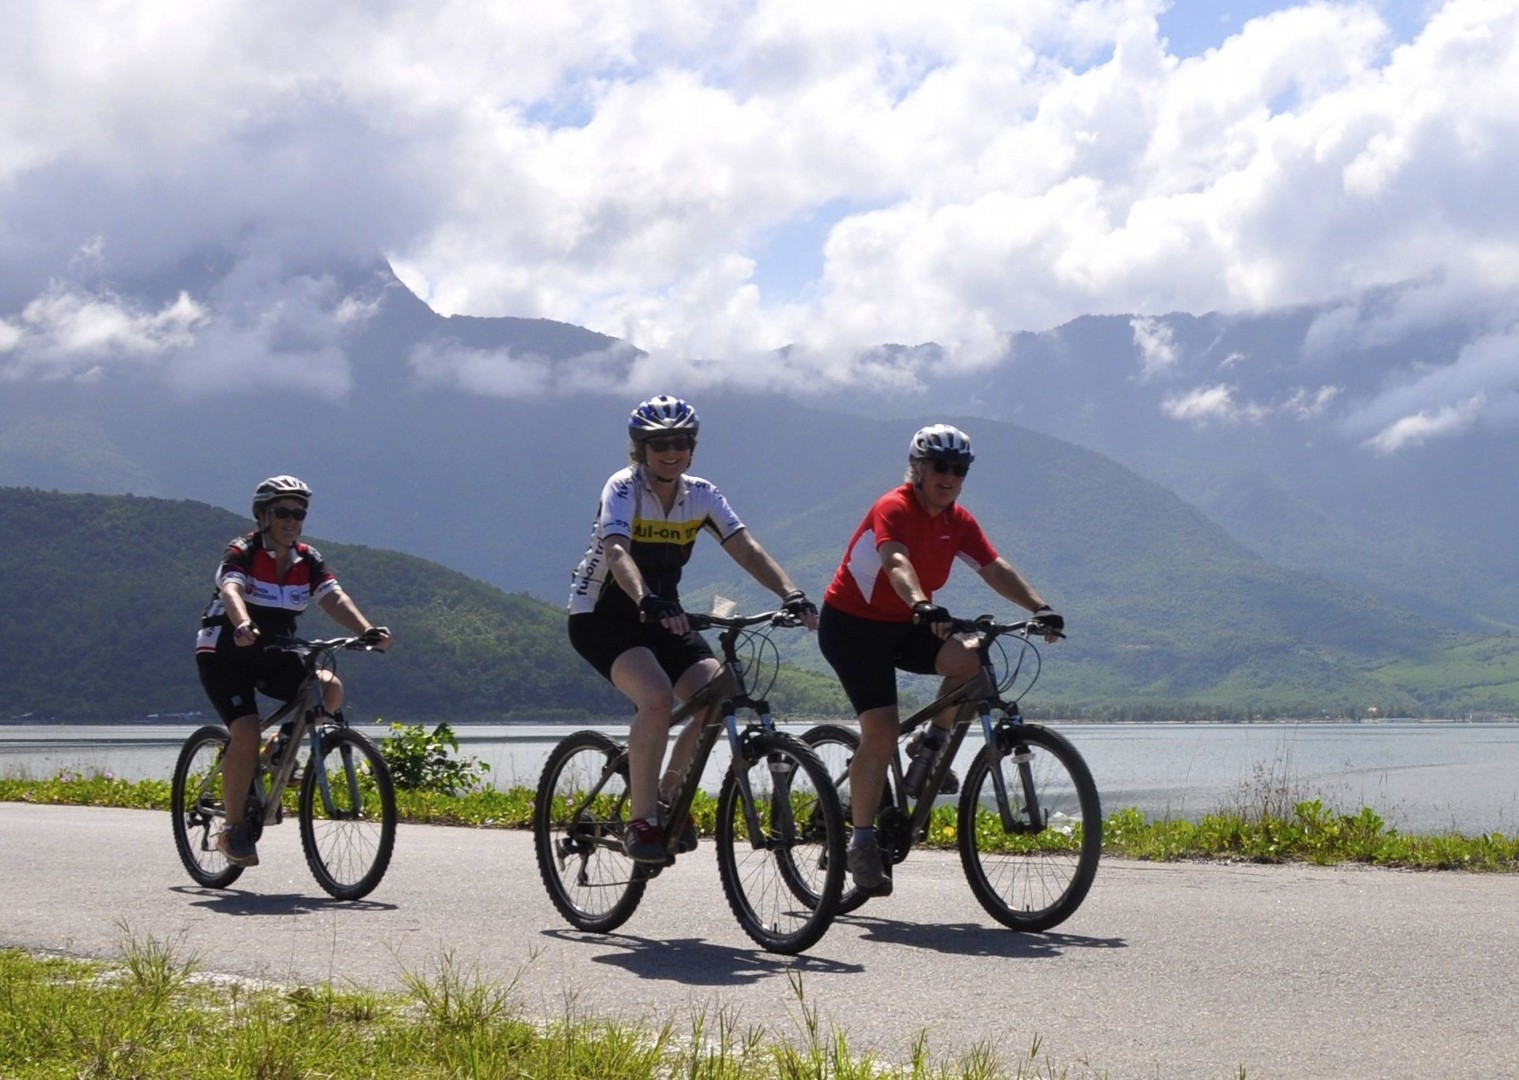 vietnamcycling holiday3.jpg - Laos - Hidden Treasures - Cycling Adventures